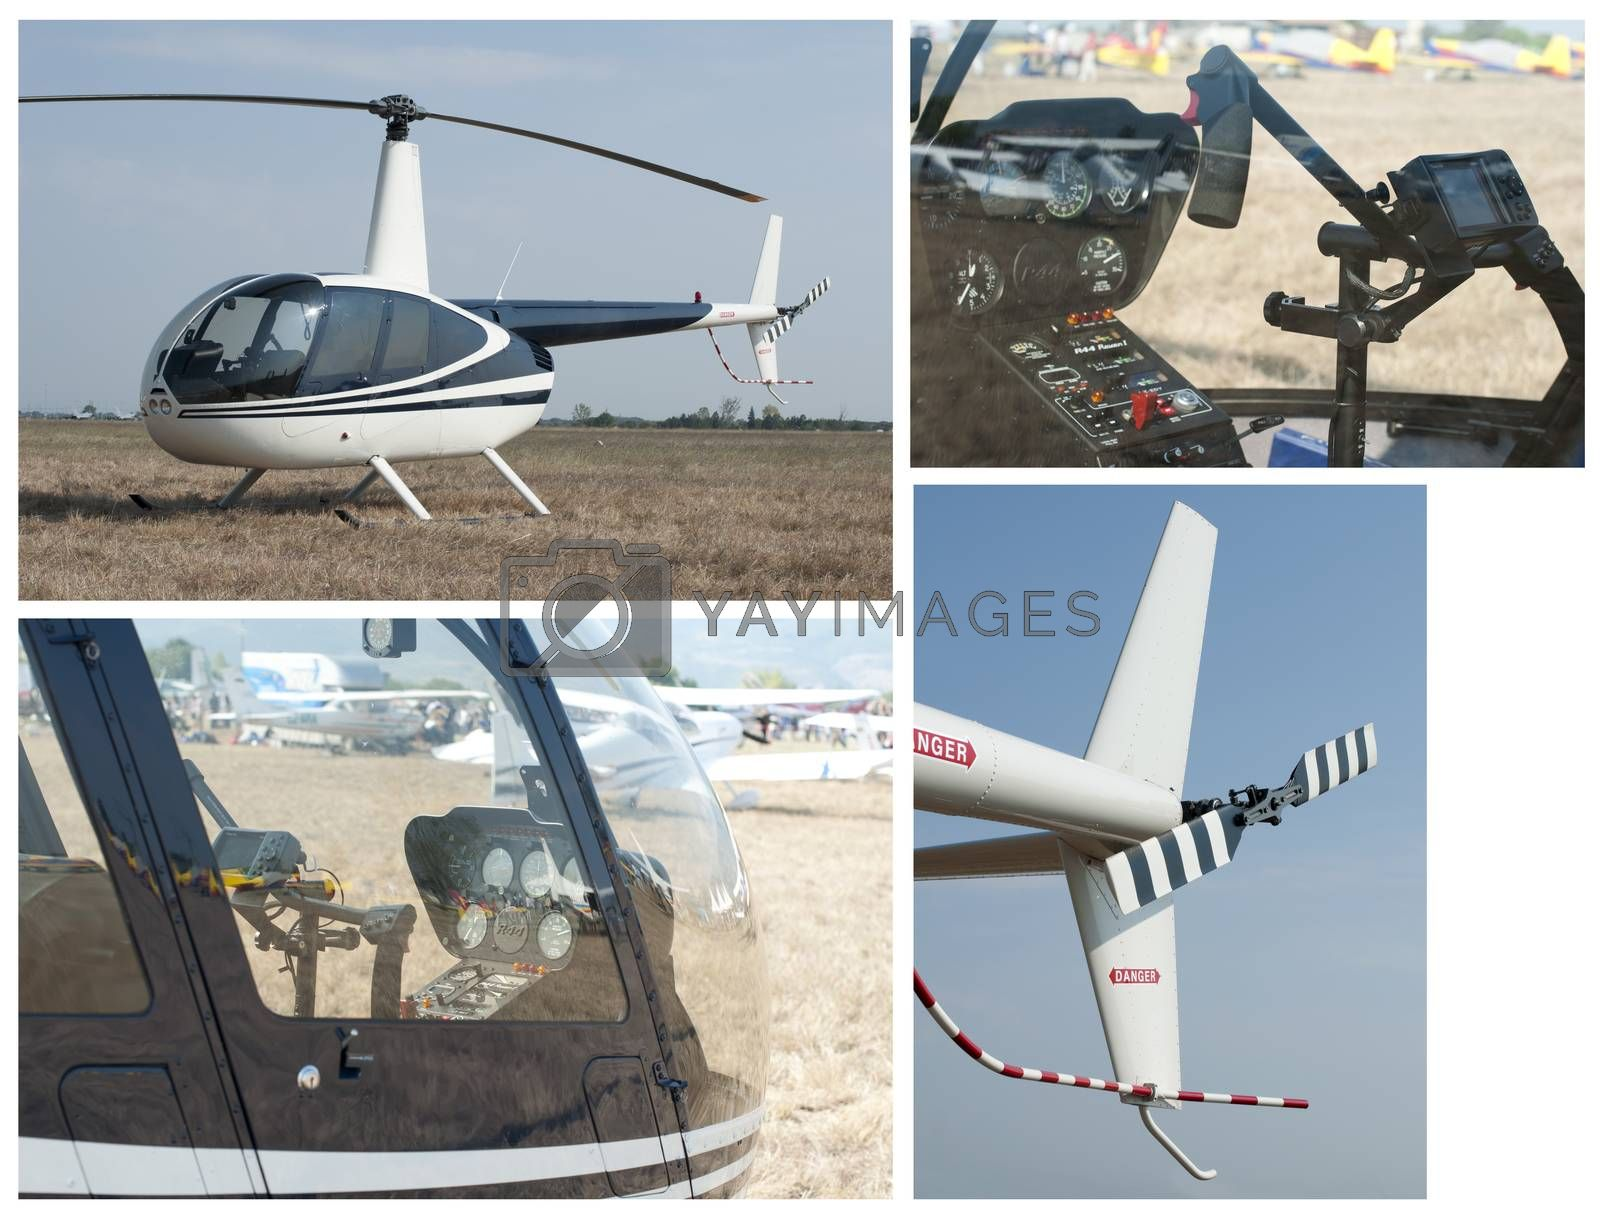 Helicopter, rear wing, cabin and steering lever. Four images